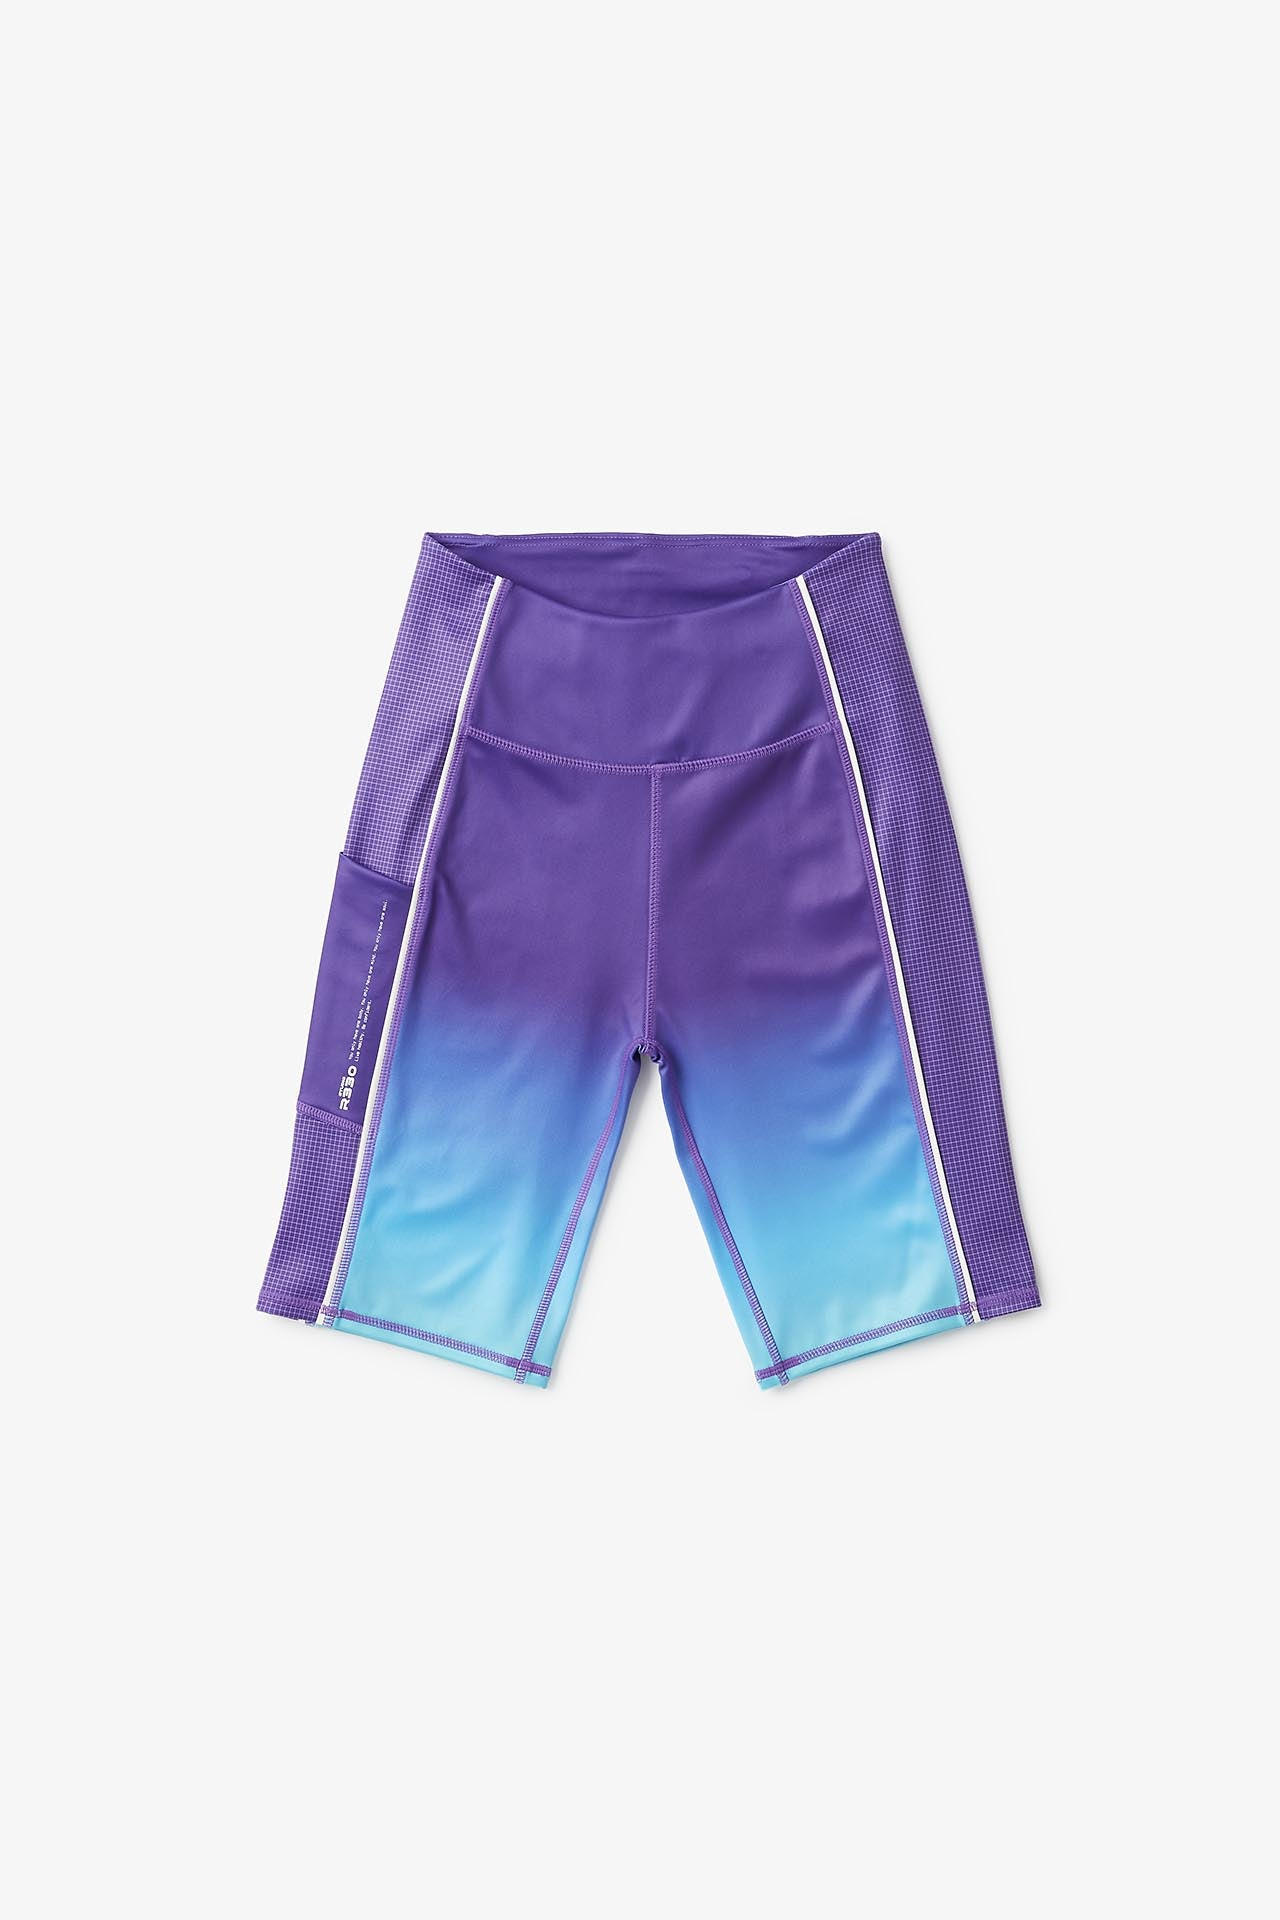 Gradient Bike Shorts